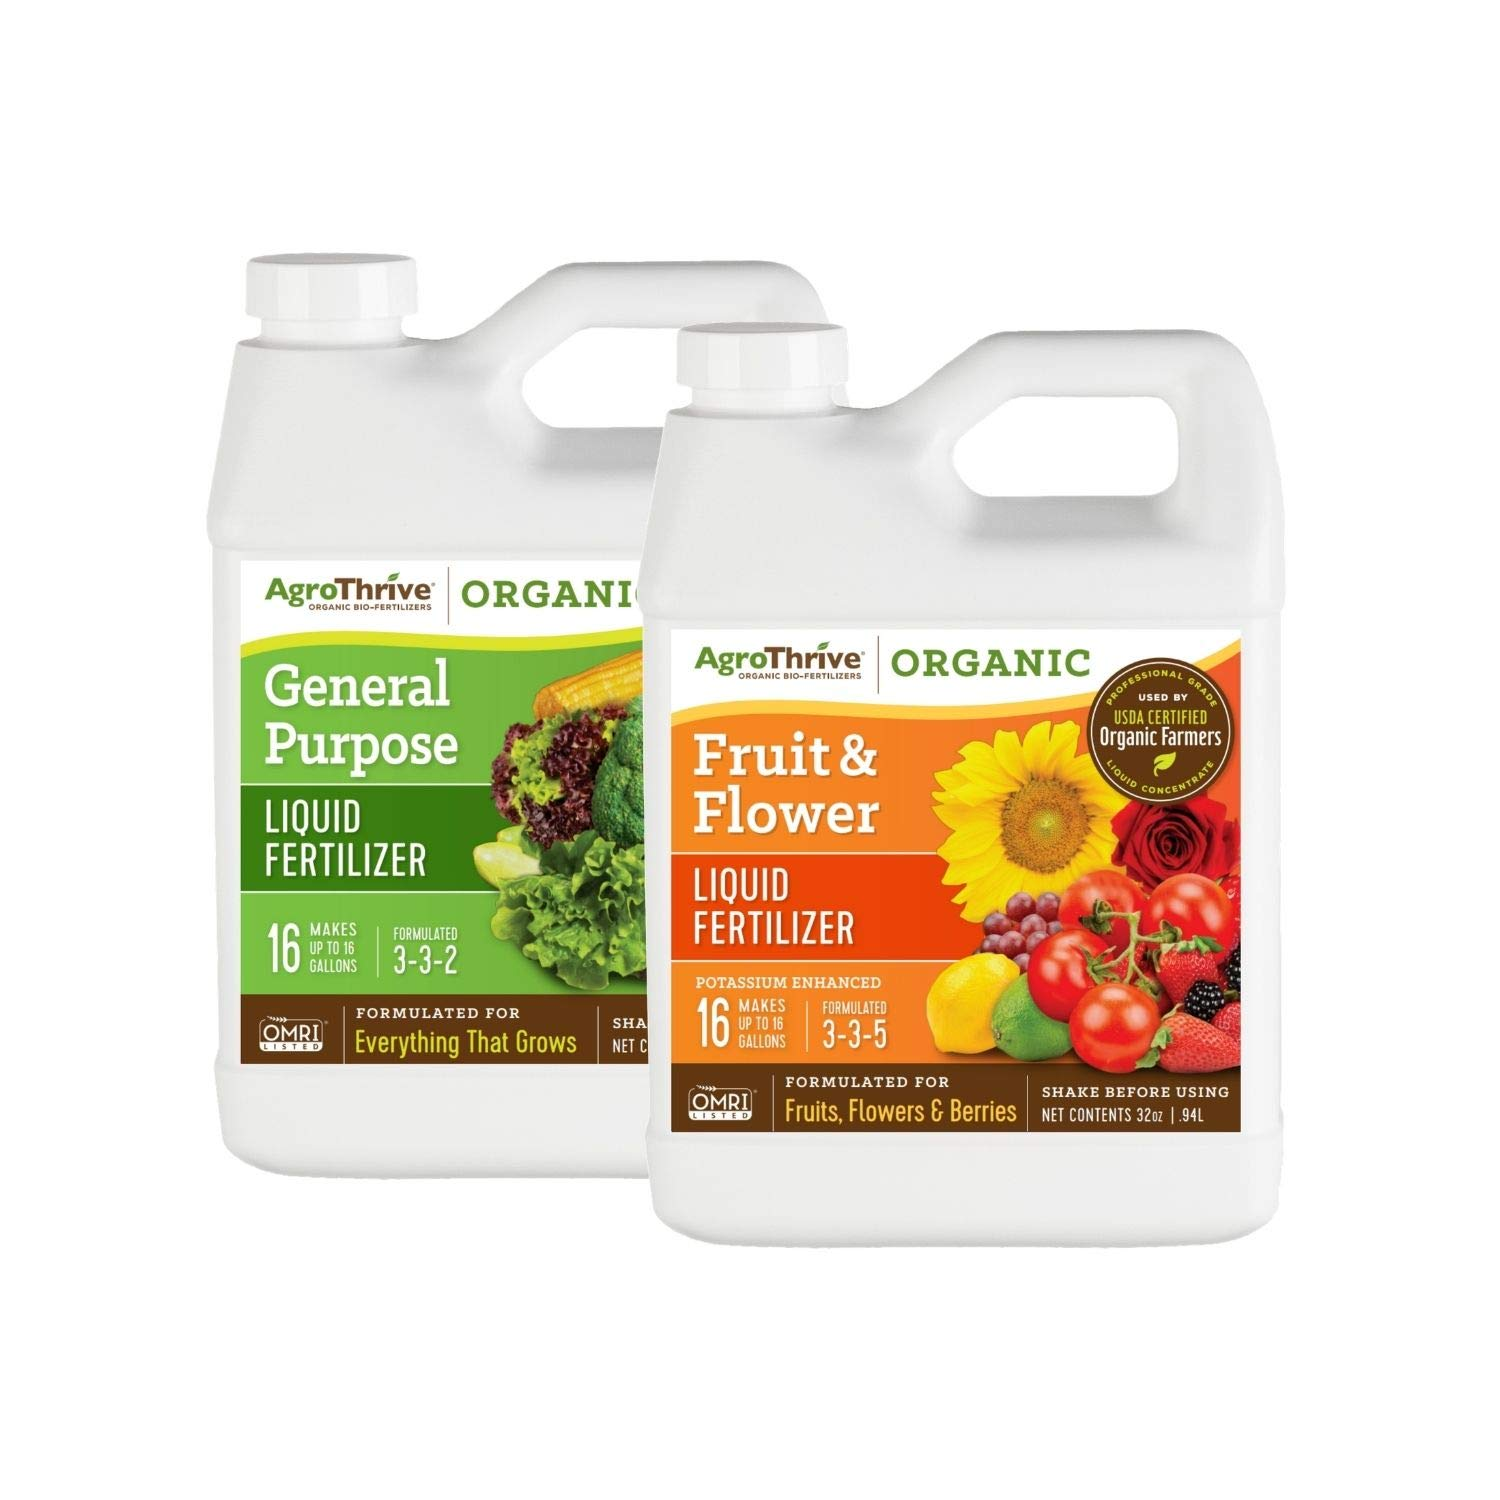 2 in 1 All Purpose AgroThrive Organic Fertilizer Bundle (Pack of 2-32 oz. Bottles) Suitable for Organic Production